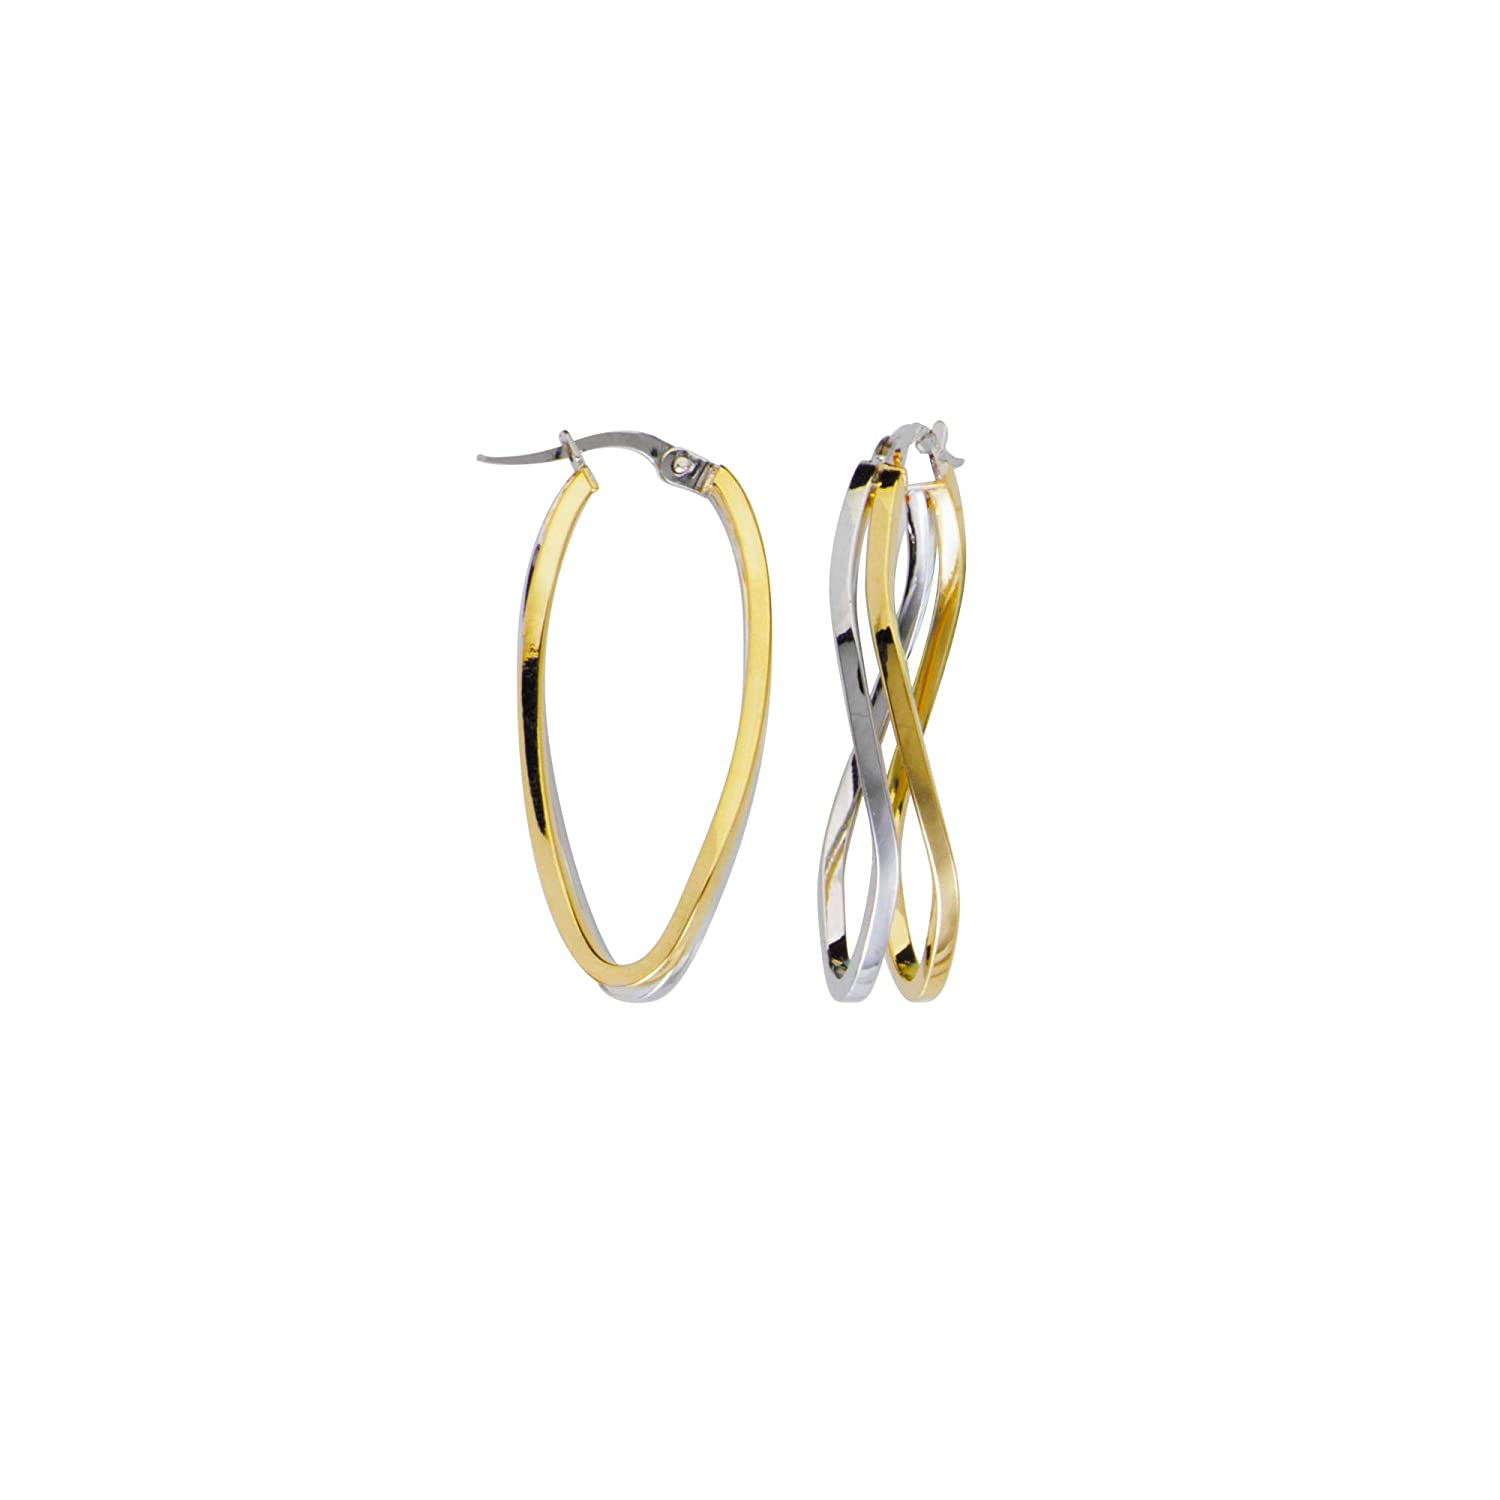 Earring Chest 10K White and Yellow Gold Double Wave Square Tube Hoop Earrings